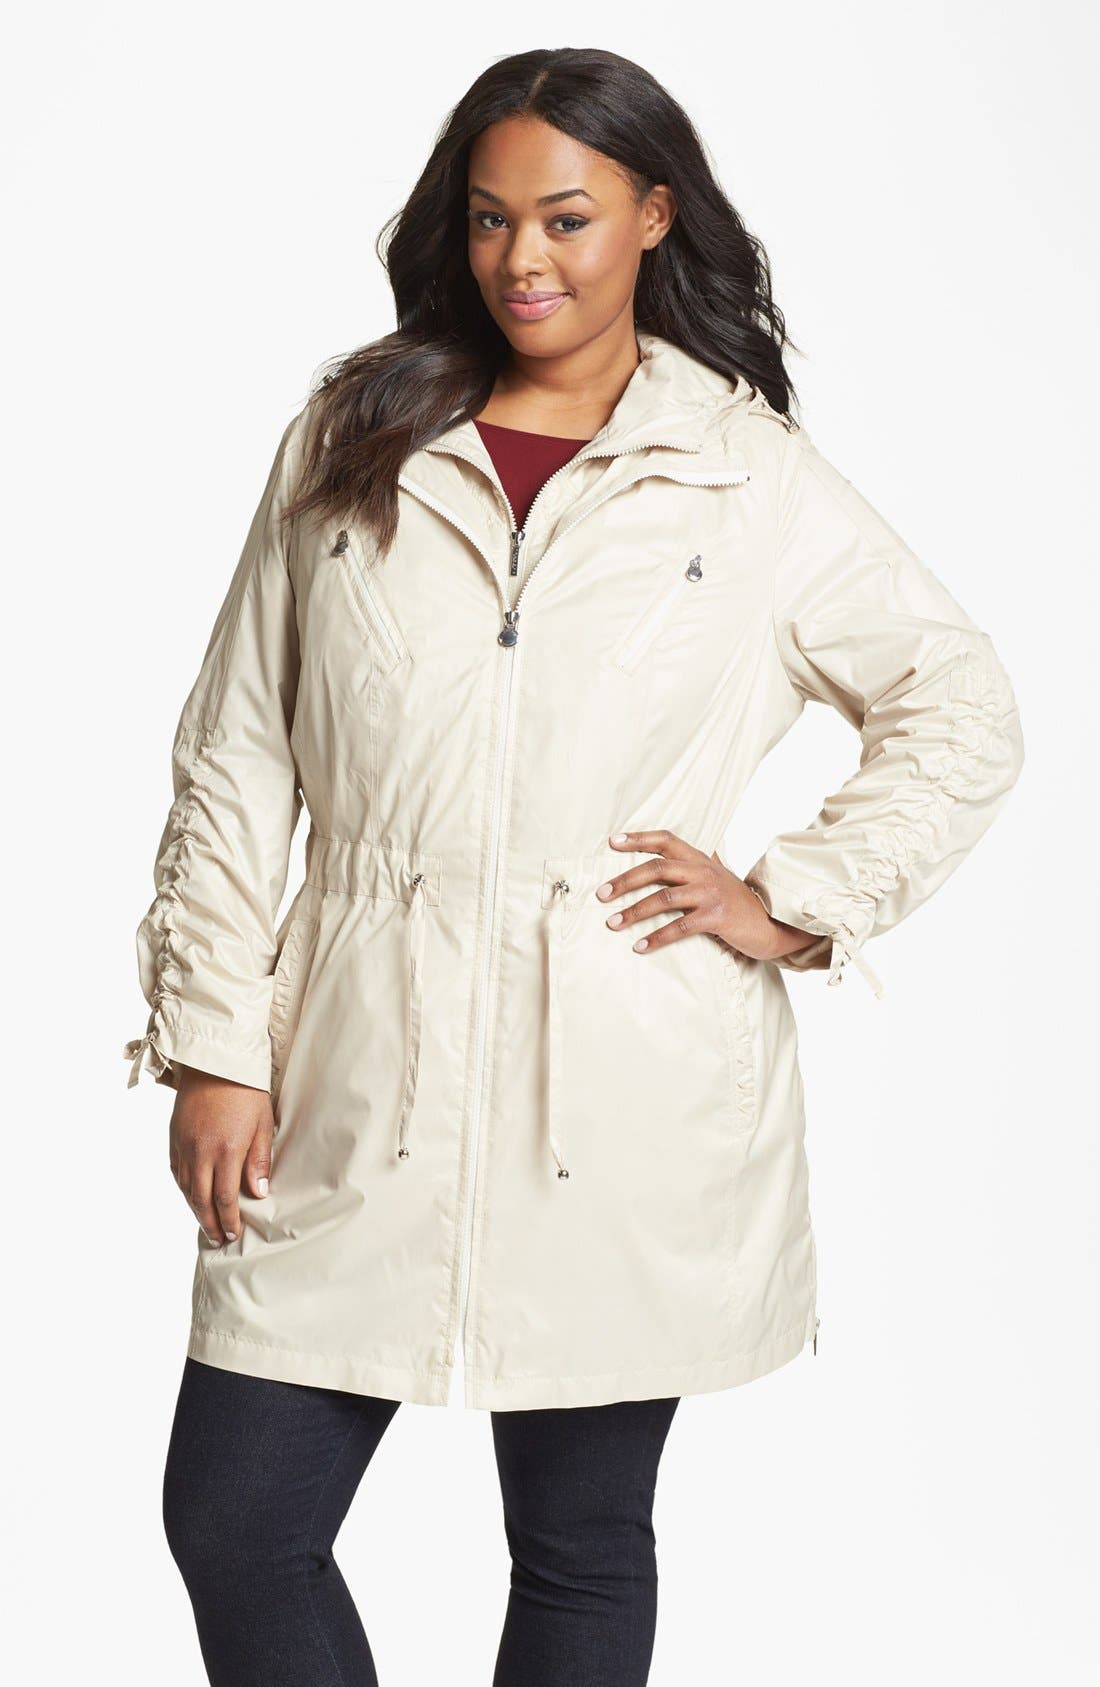 Alternate Image 1 Selected - Laundry by Shelli Segal 3-in-1 Jacket (Plus Size)